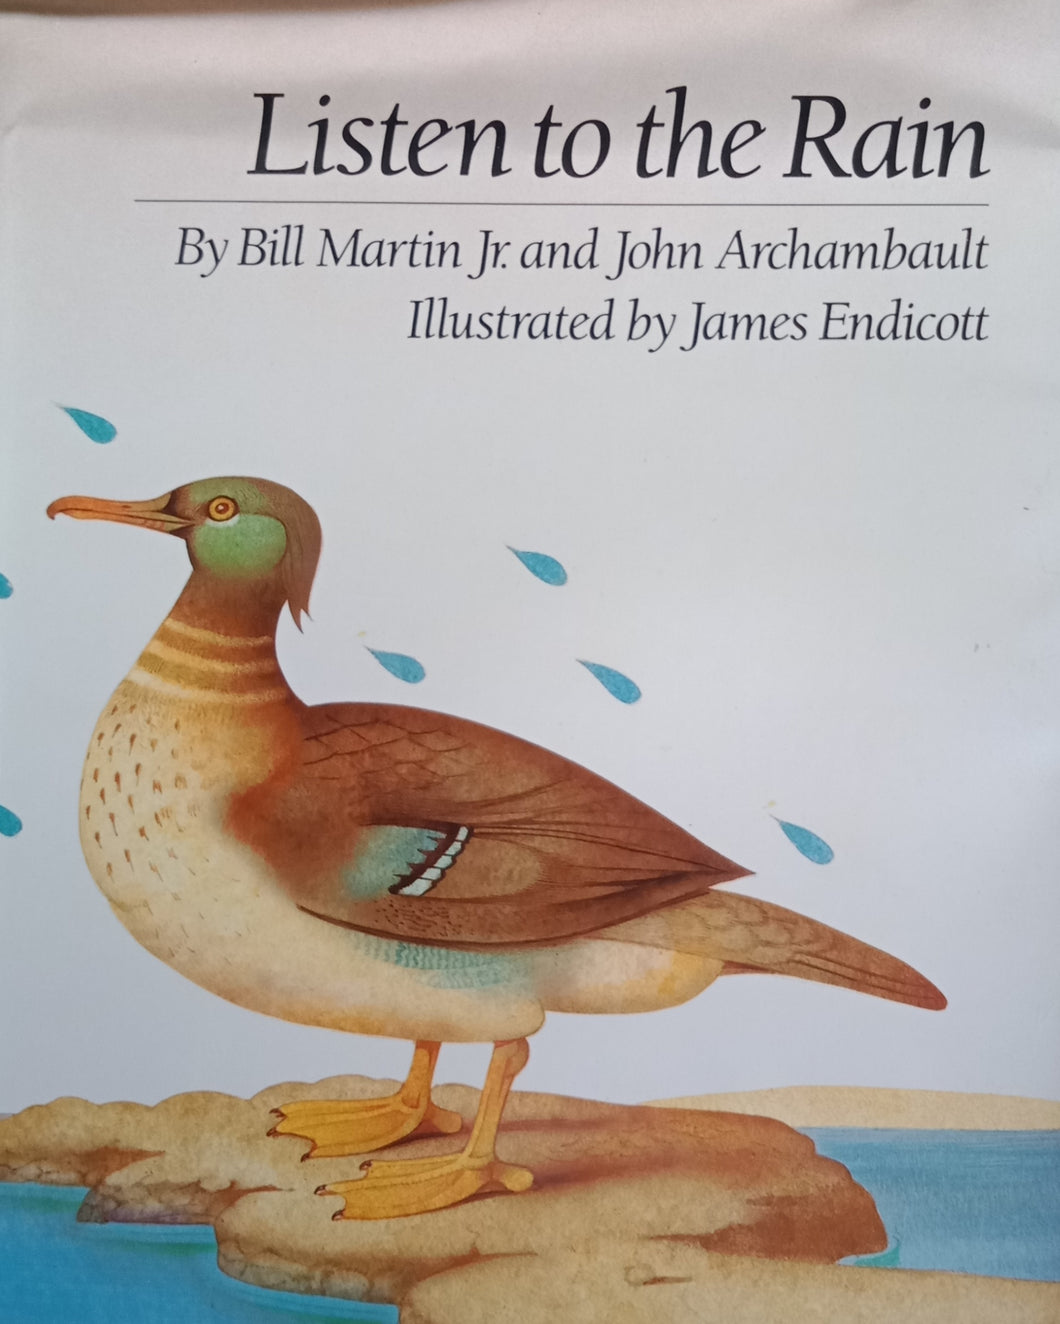 Listen To The Rain by Bill Martin